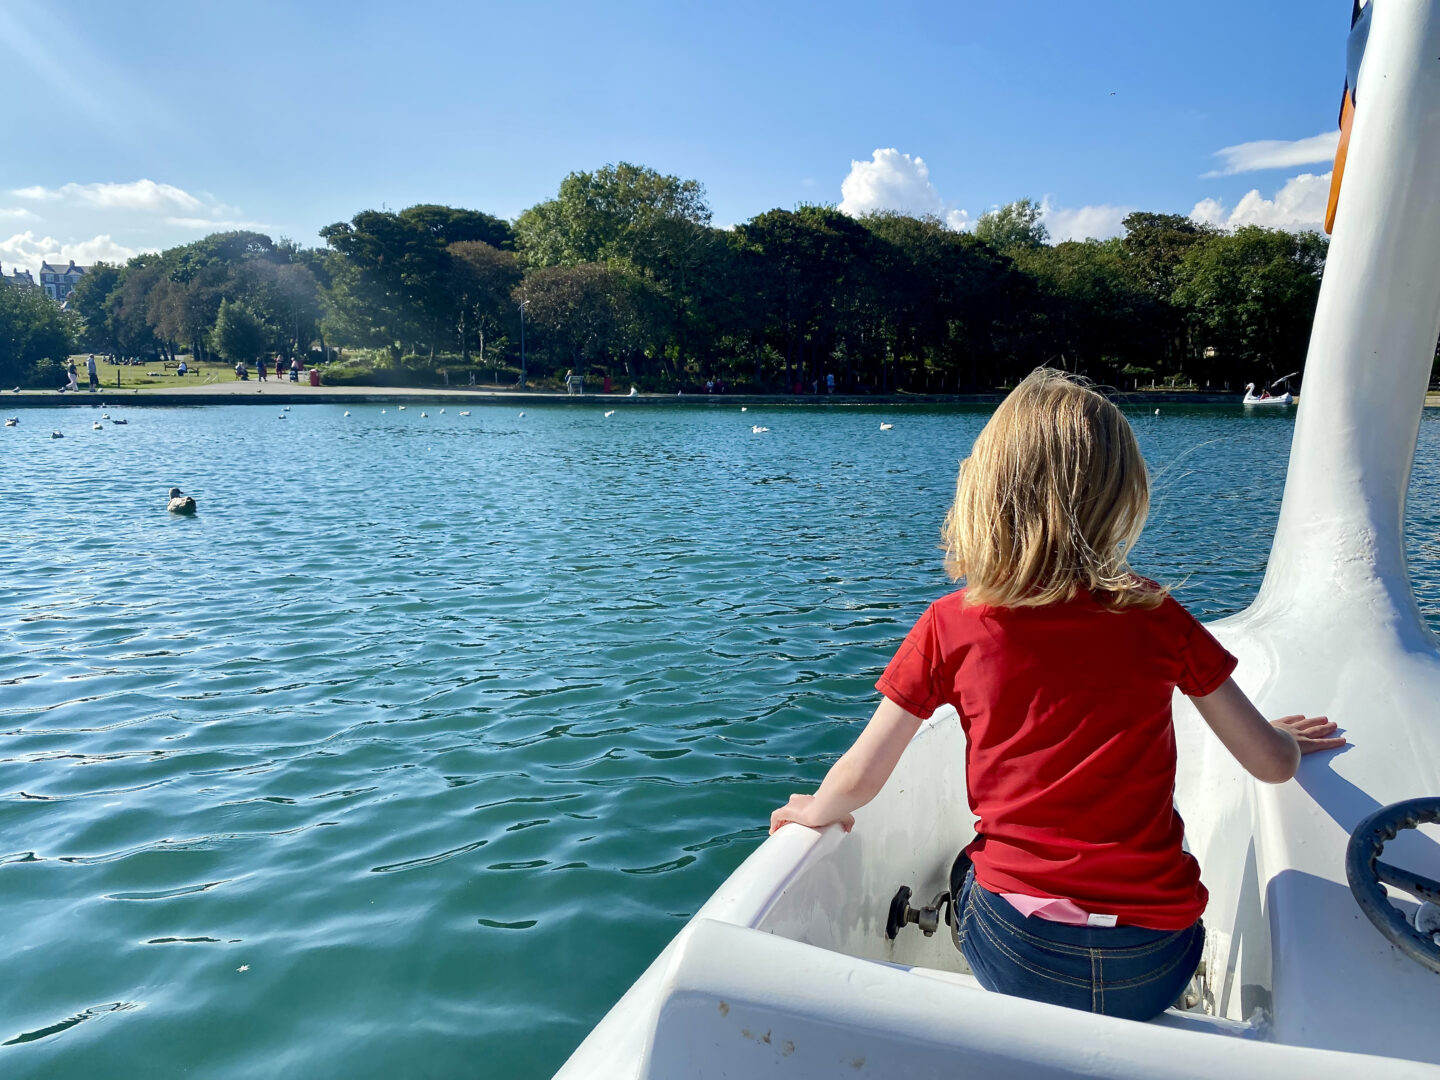 A young girl in a red top riding a swan boat on a boating lake